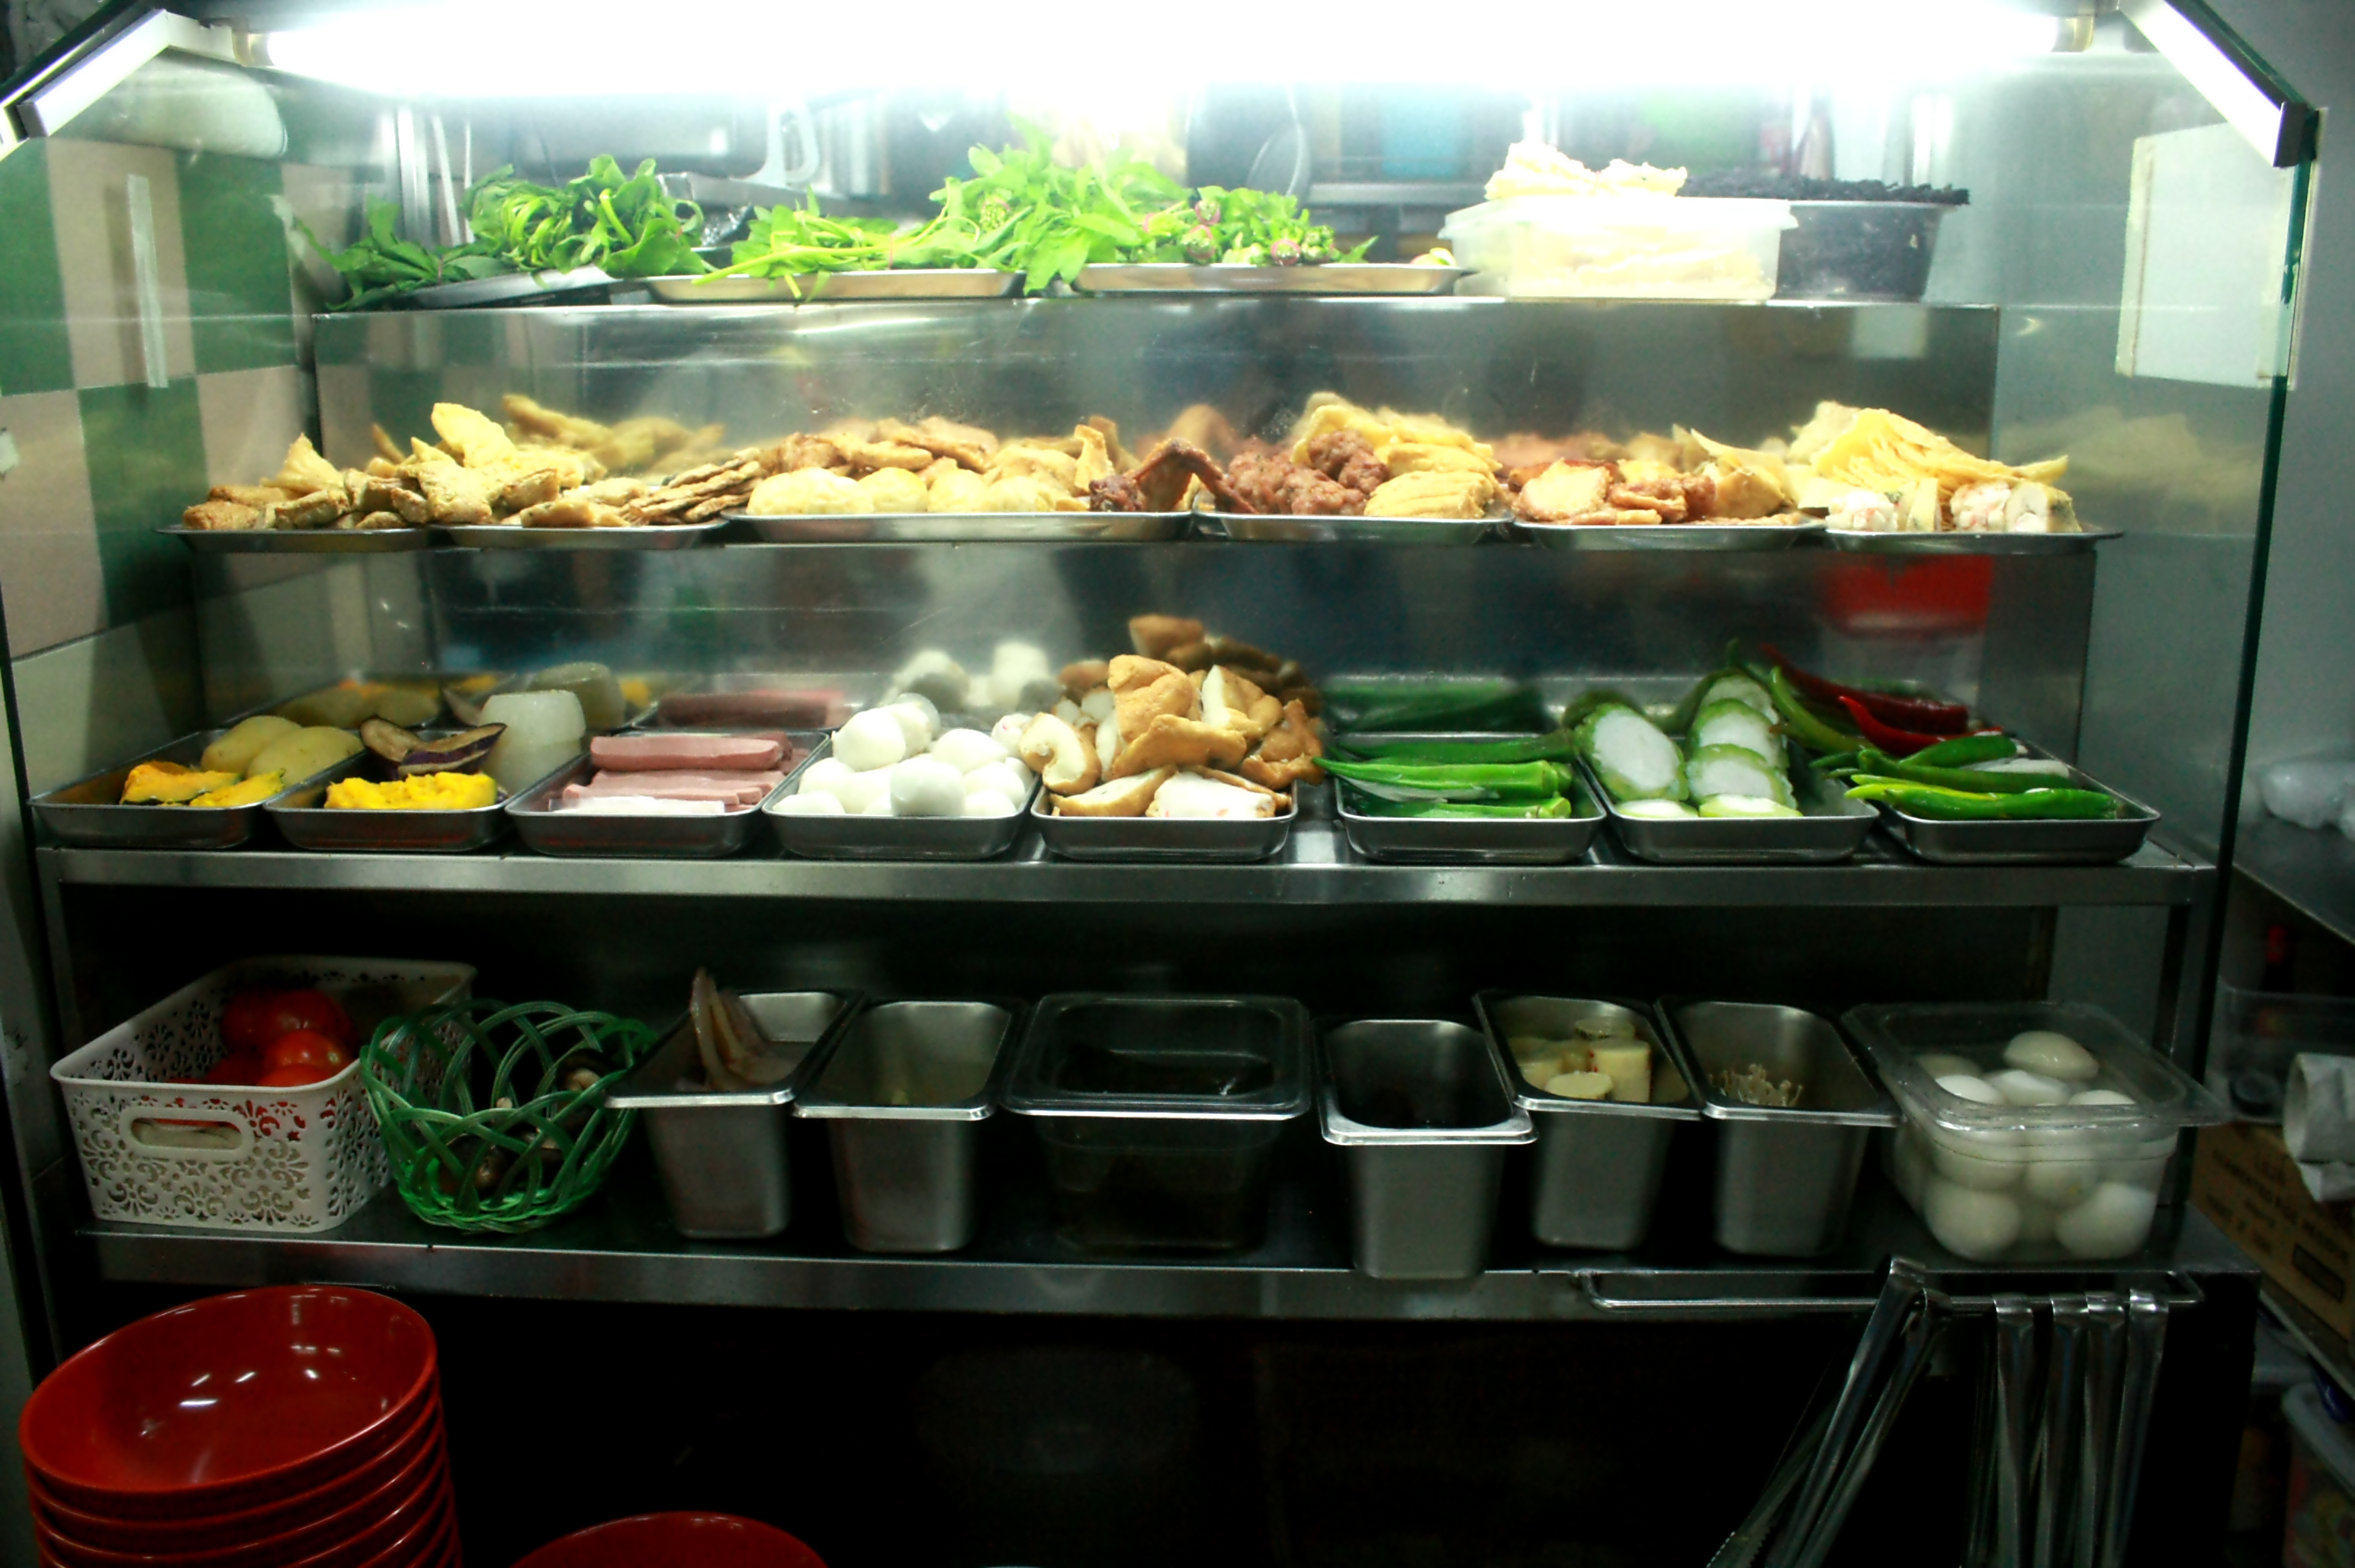 What takes you aback are the low prices – two full meals a day for less than S$10